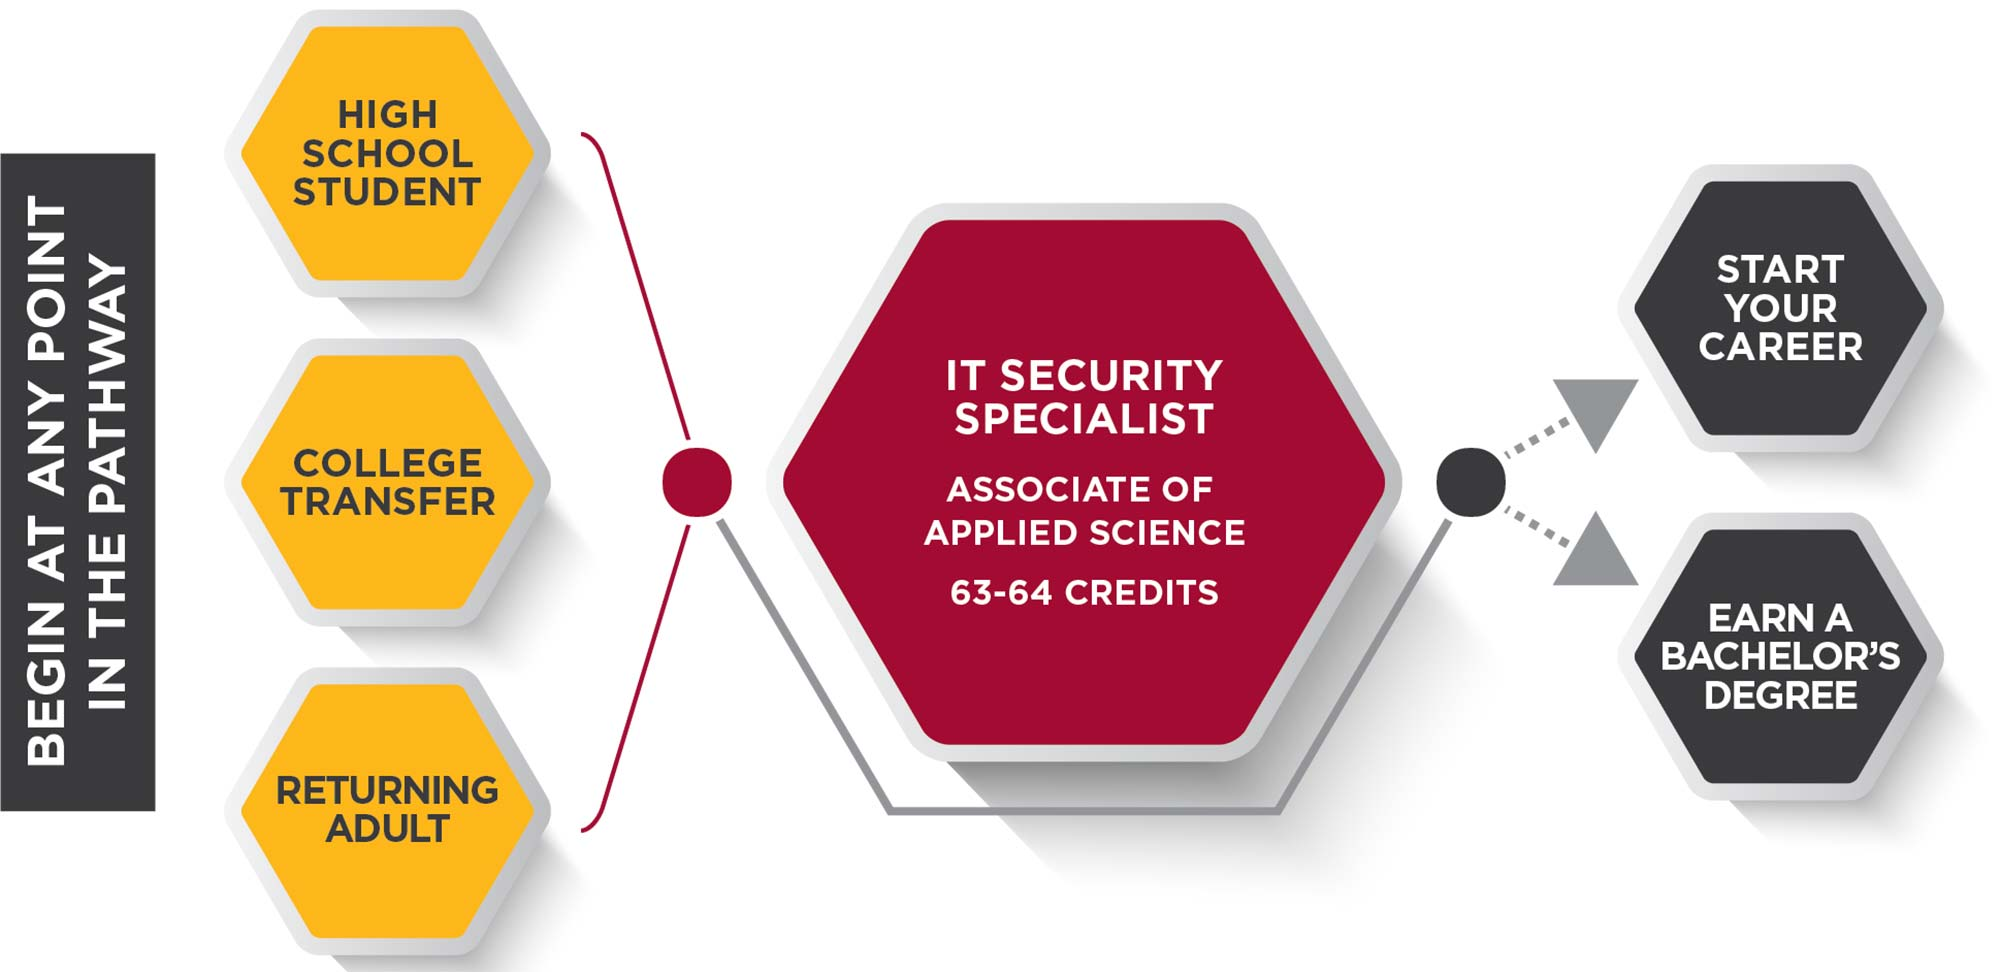 IT Security Specialist Pathway